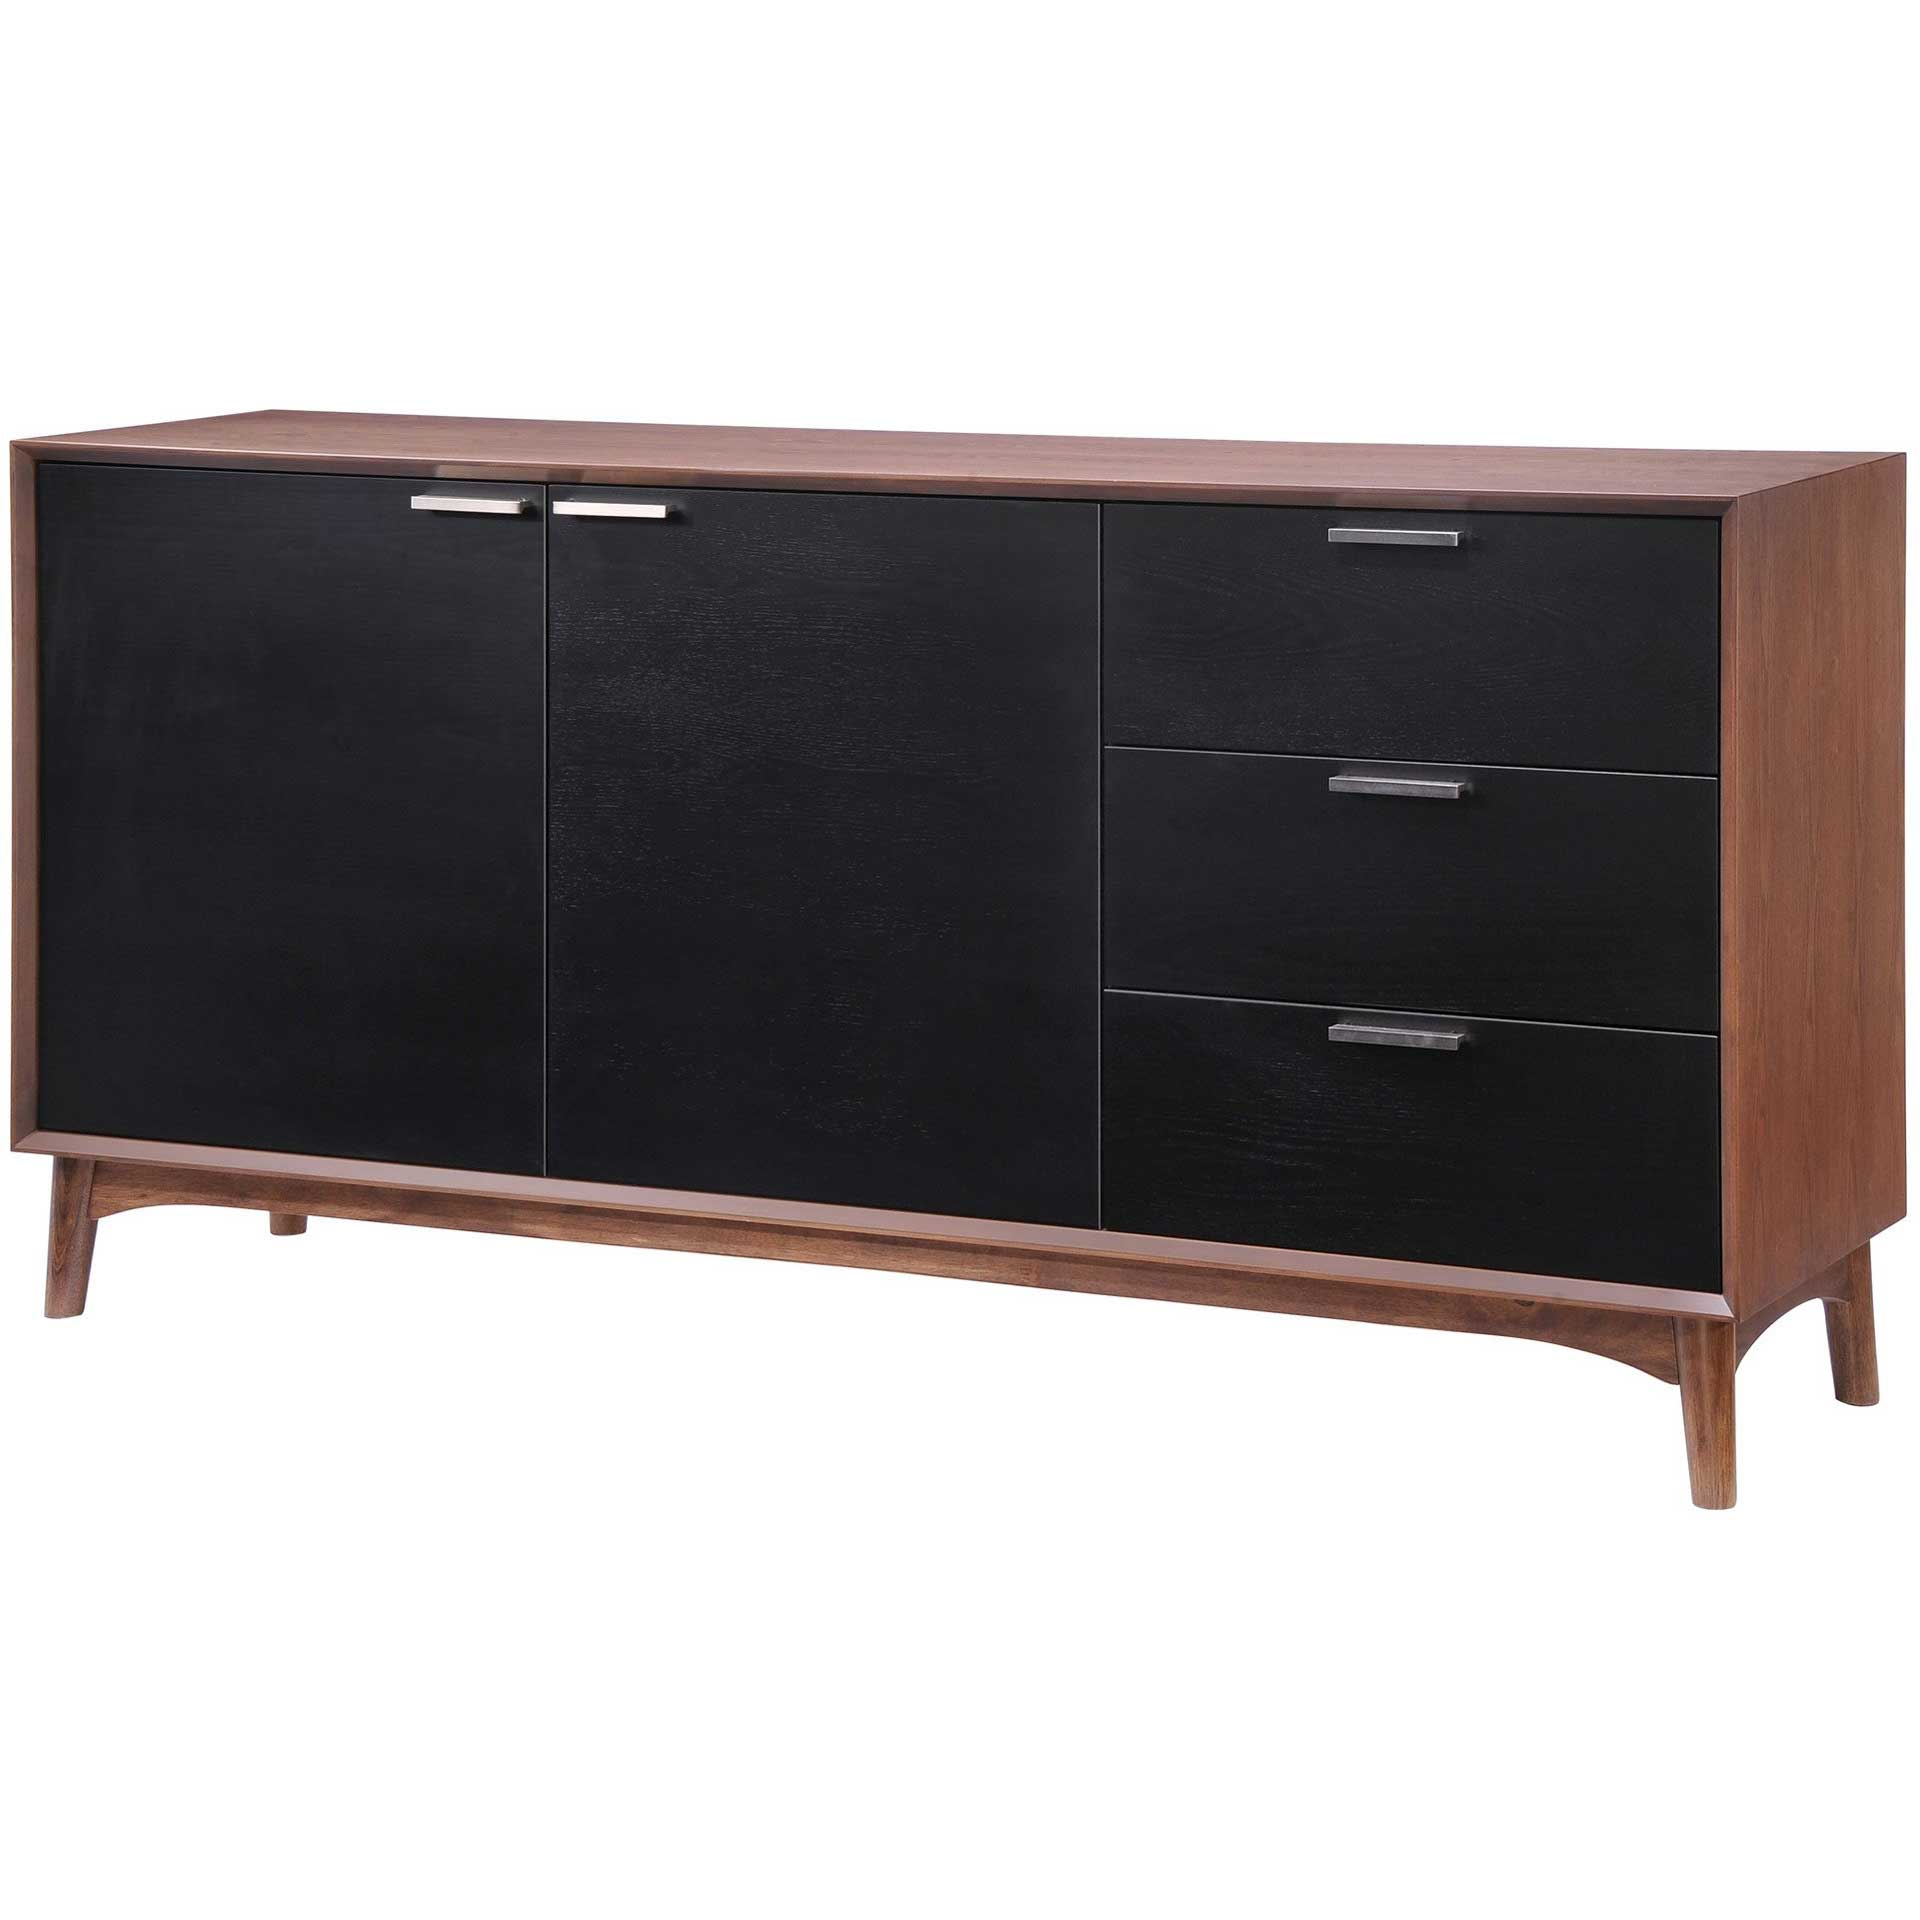 Liberty Bay Buffet Walnut & Black